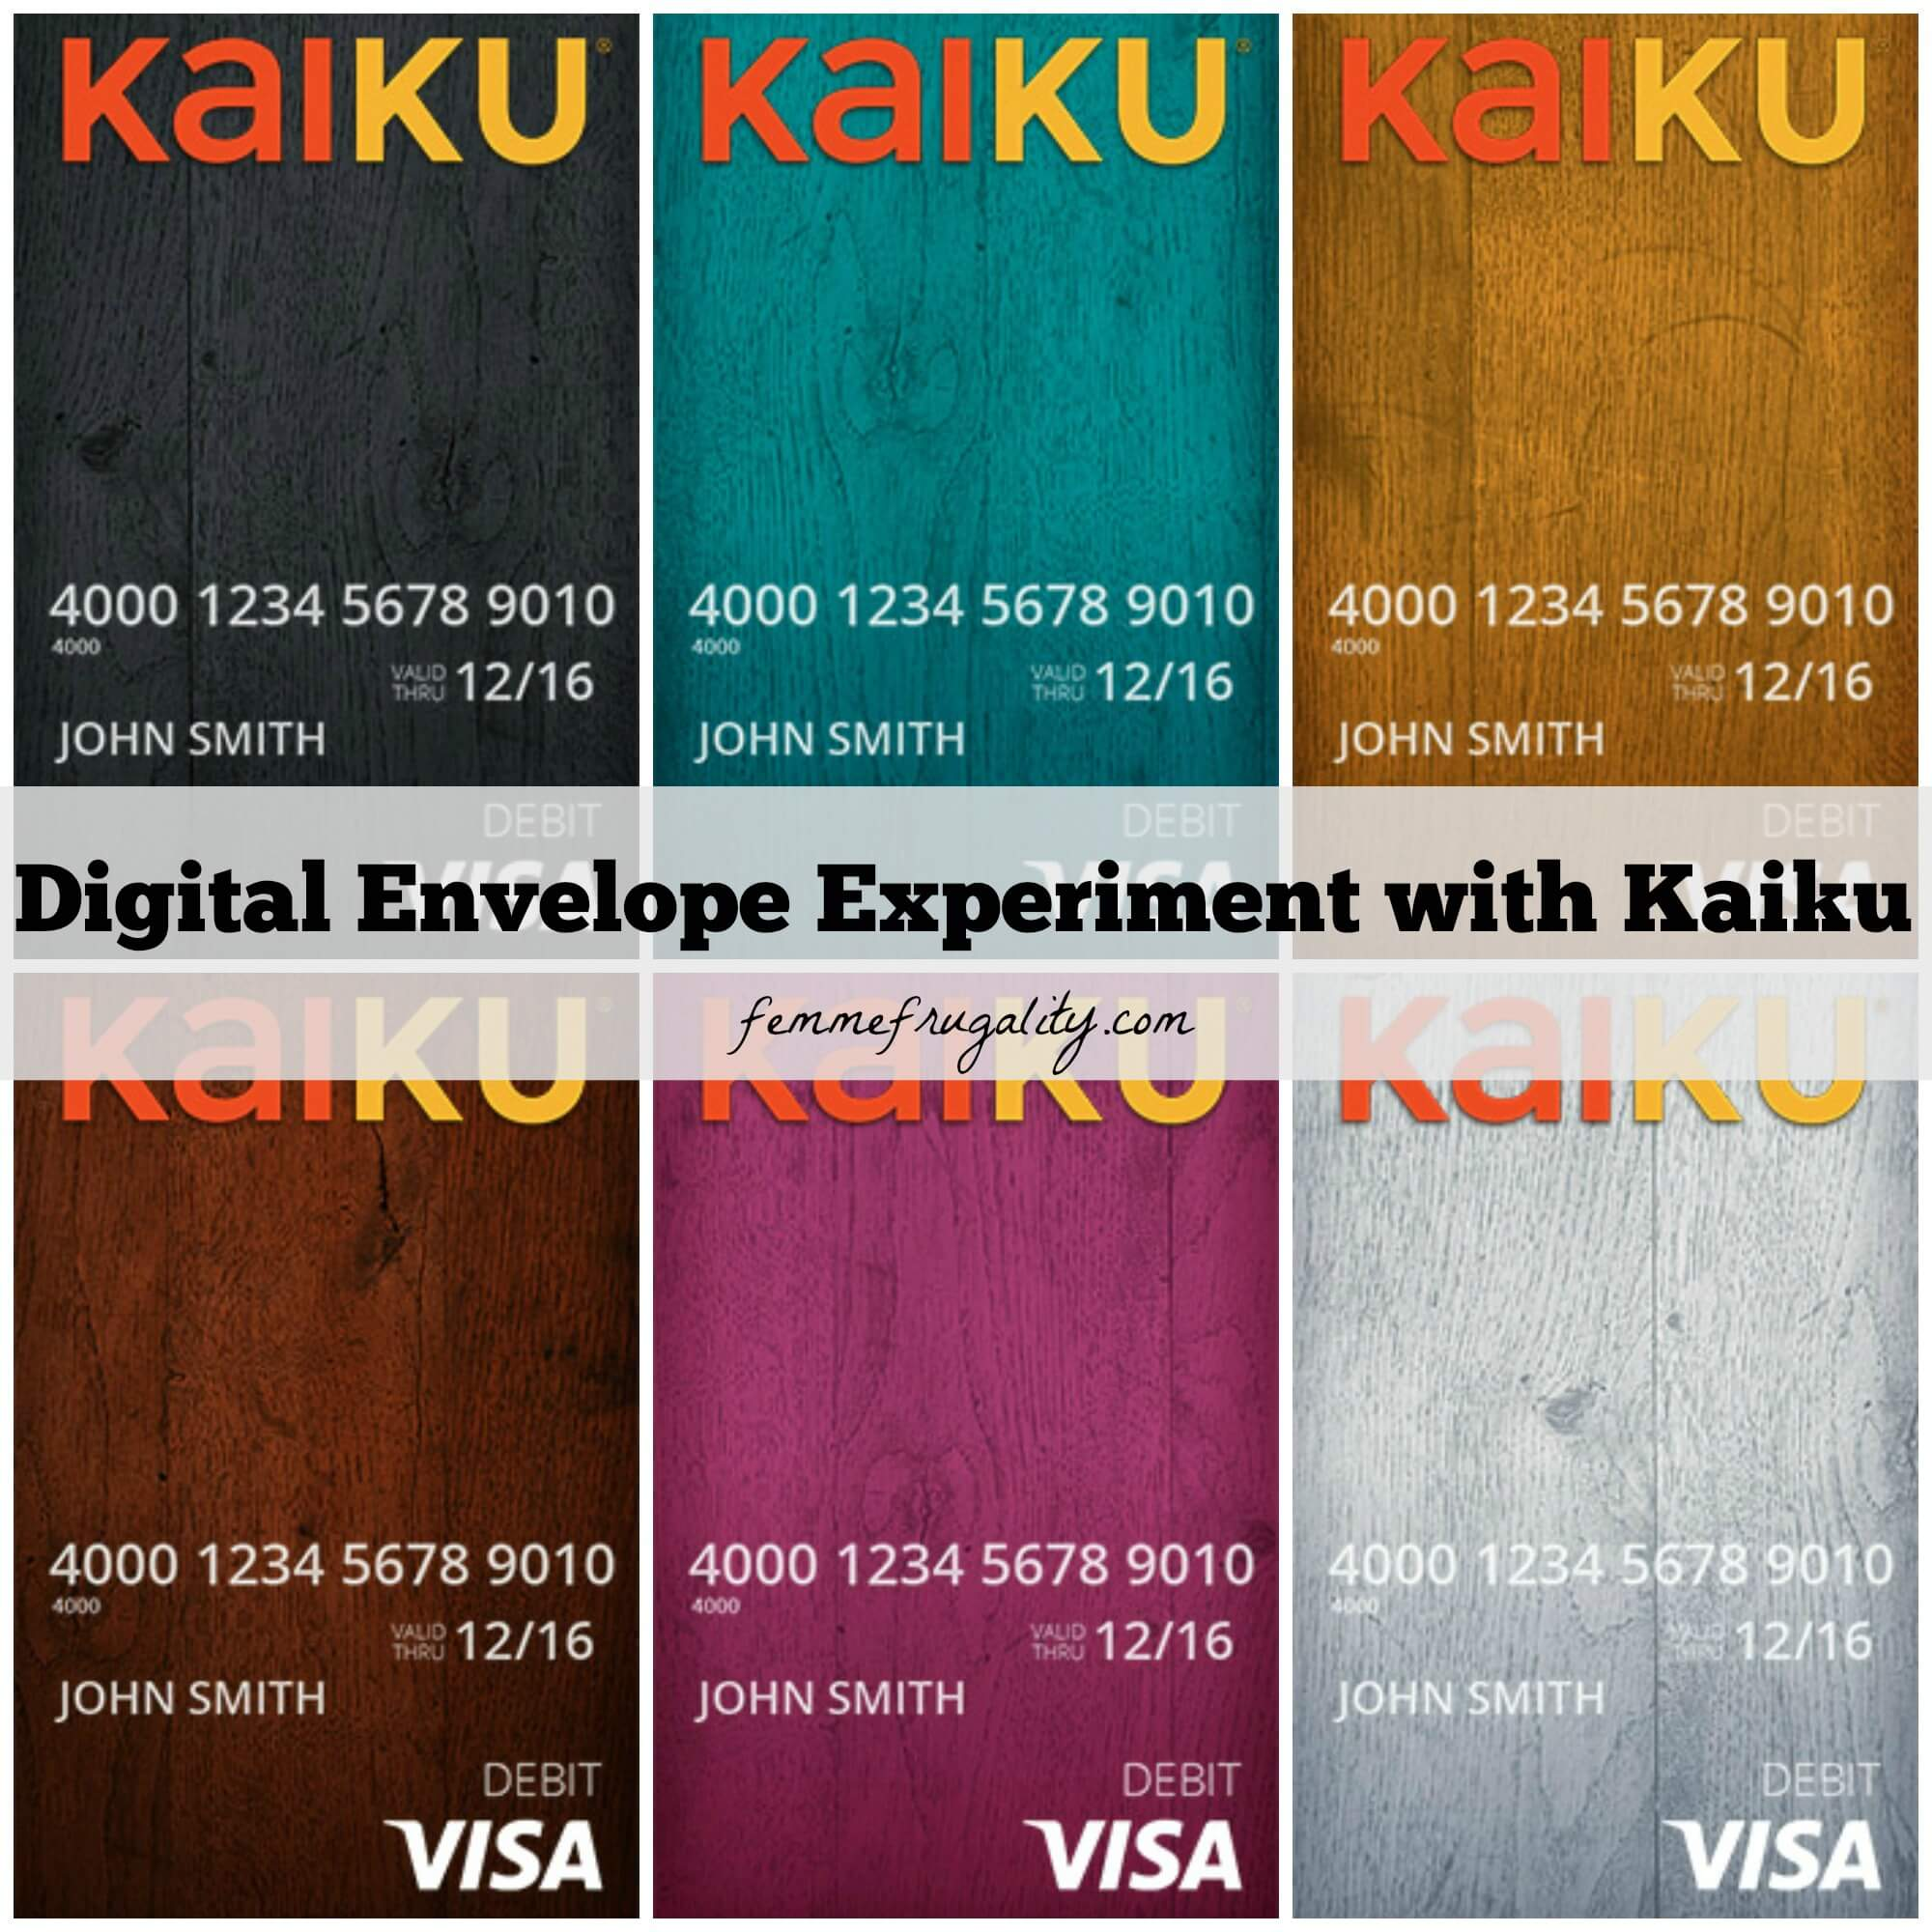 we created a digital envelope system for one month using kaiku did it help - Kaiku Visa Prepaid Card